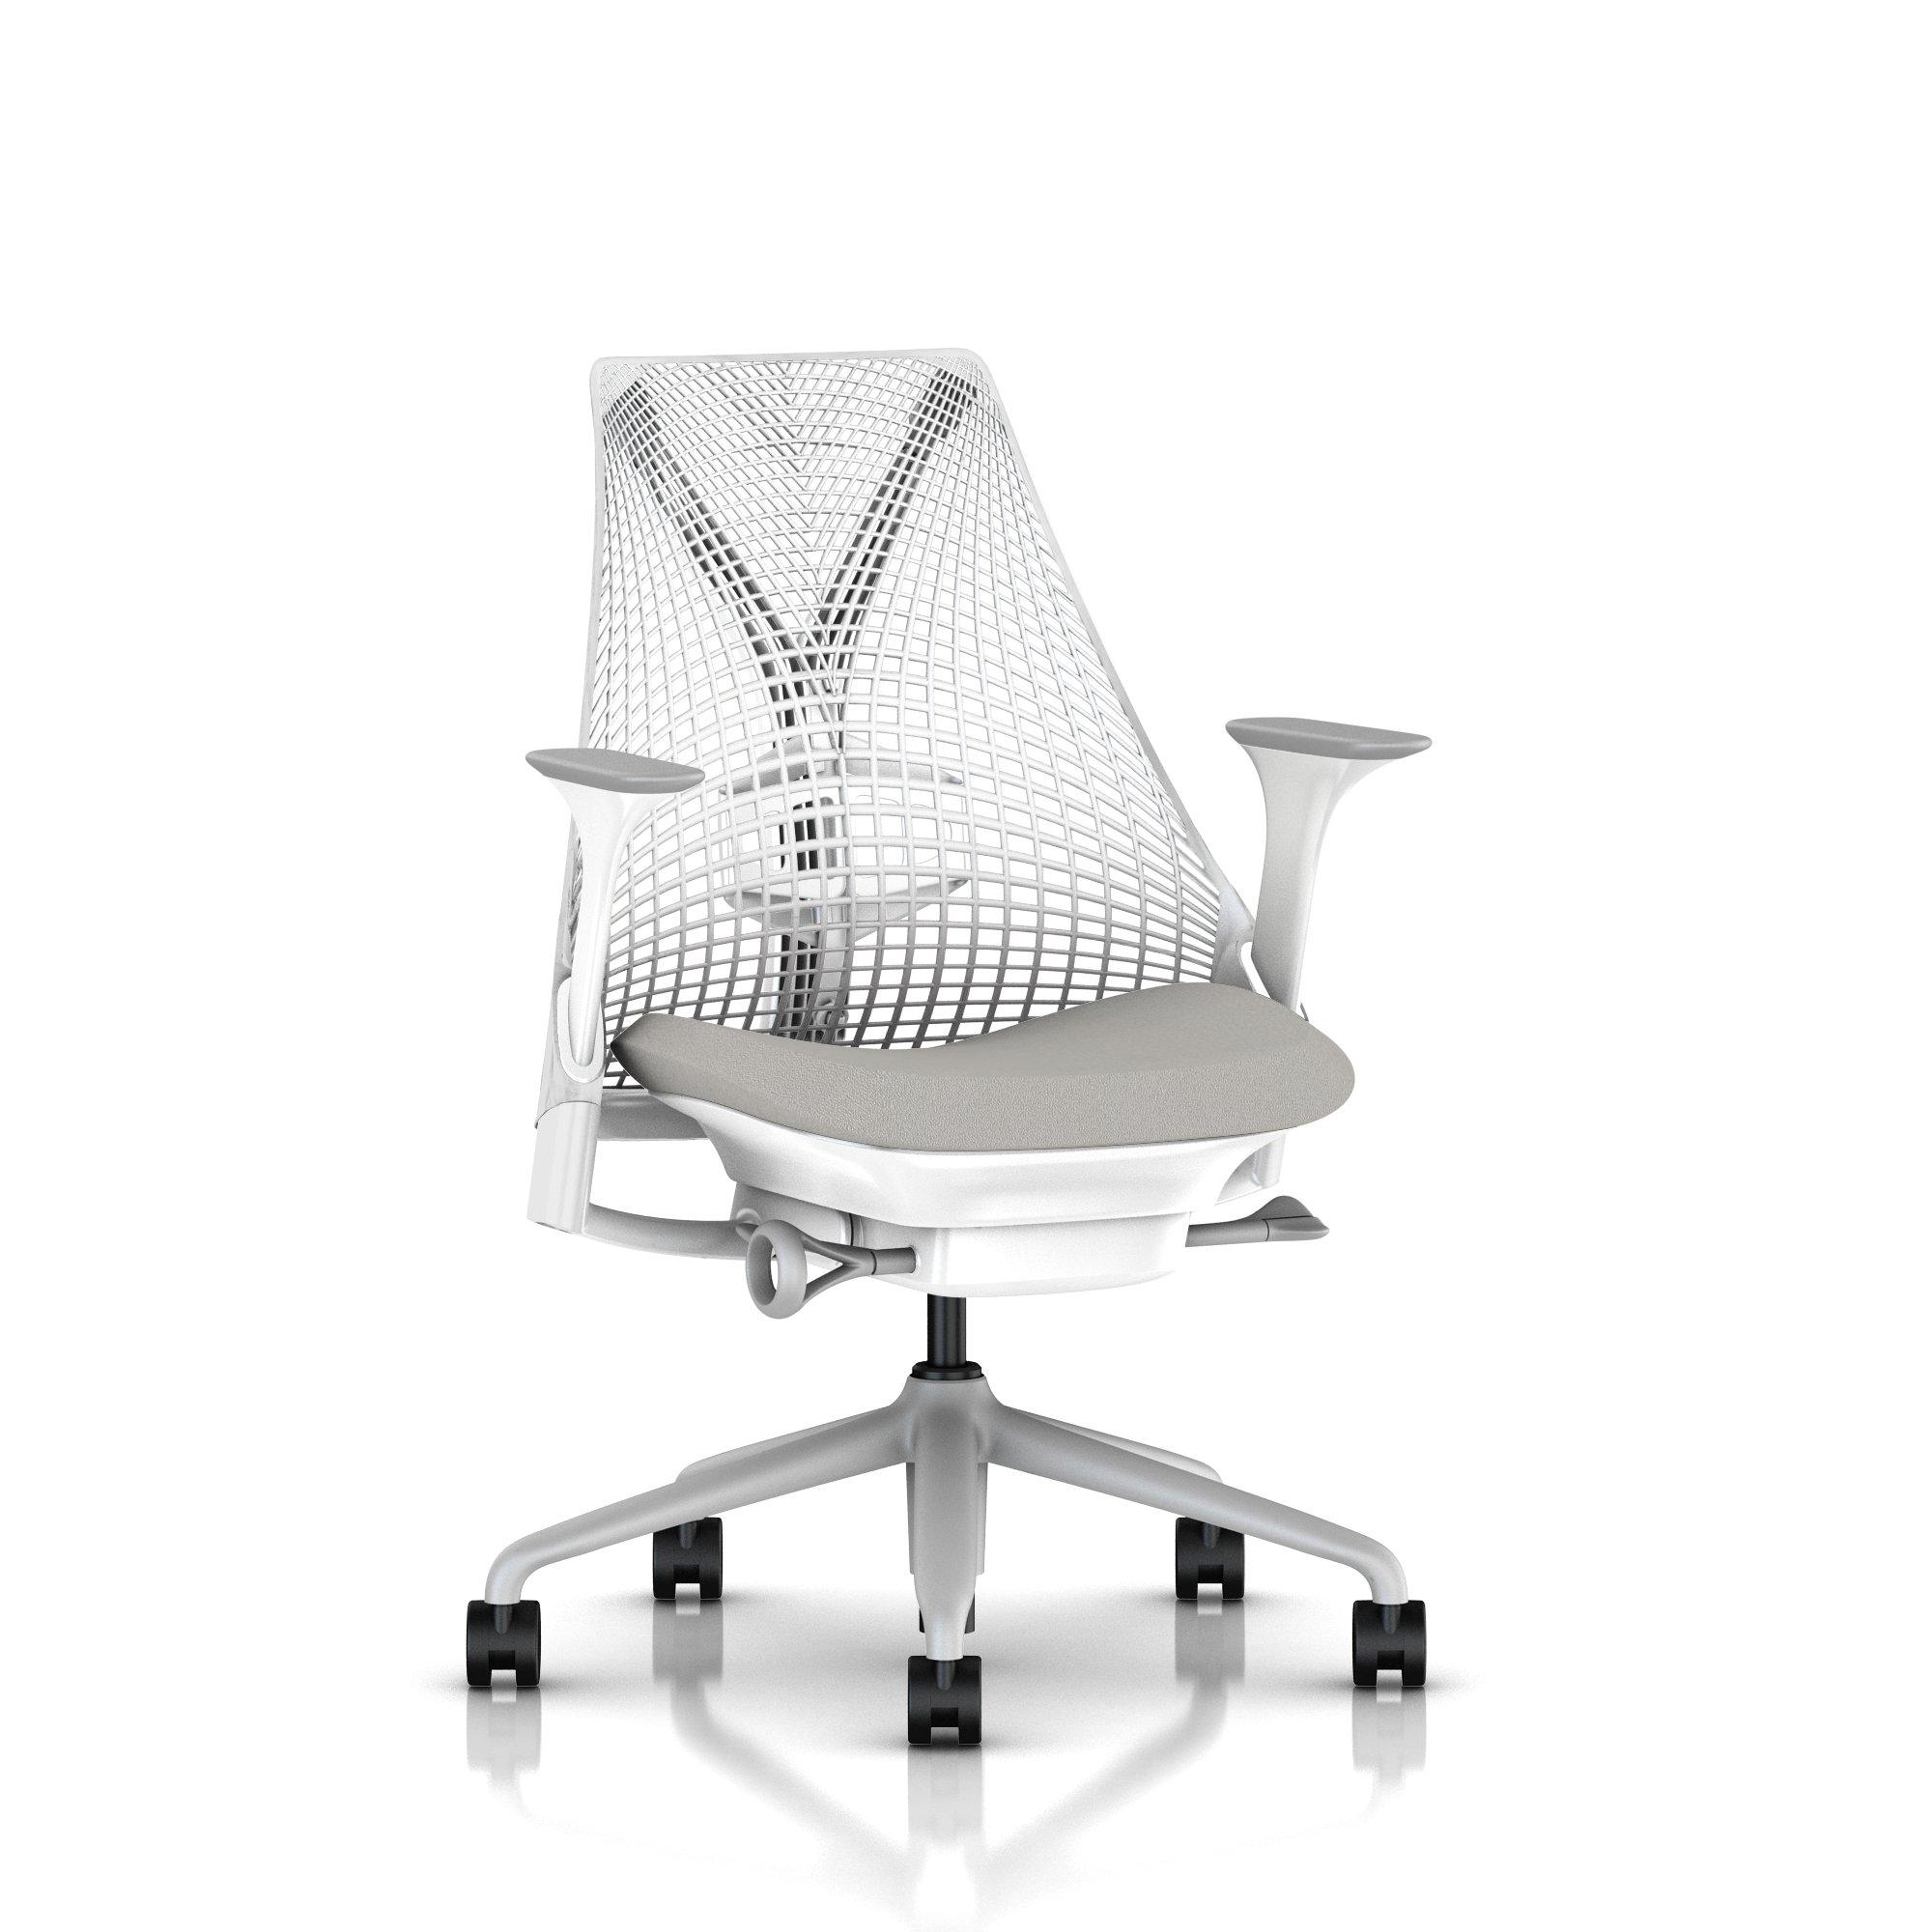 Fog Base with Studio White Y-Tower, Studio White Back, Cosmo Moonshadow Fabric Seat, Fog Armpad, Tilt Limiter with Seat Angle Adjustment, Height Adjustable Arms, Adjustable Seat Depth, Adjustable Back Support, 2.5-inch Standard Carpet Casters